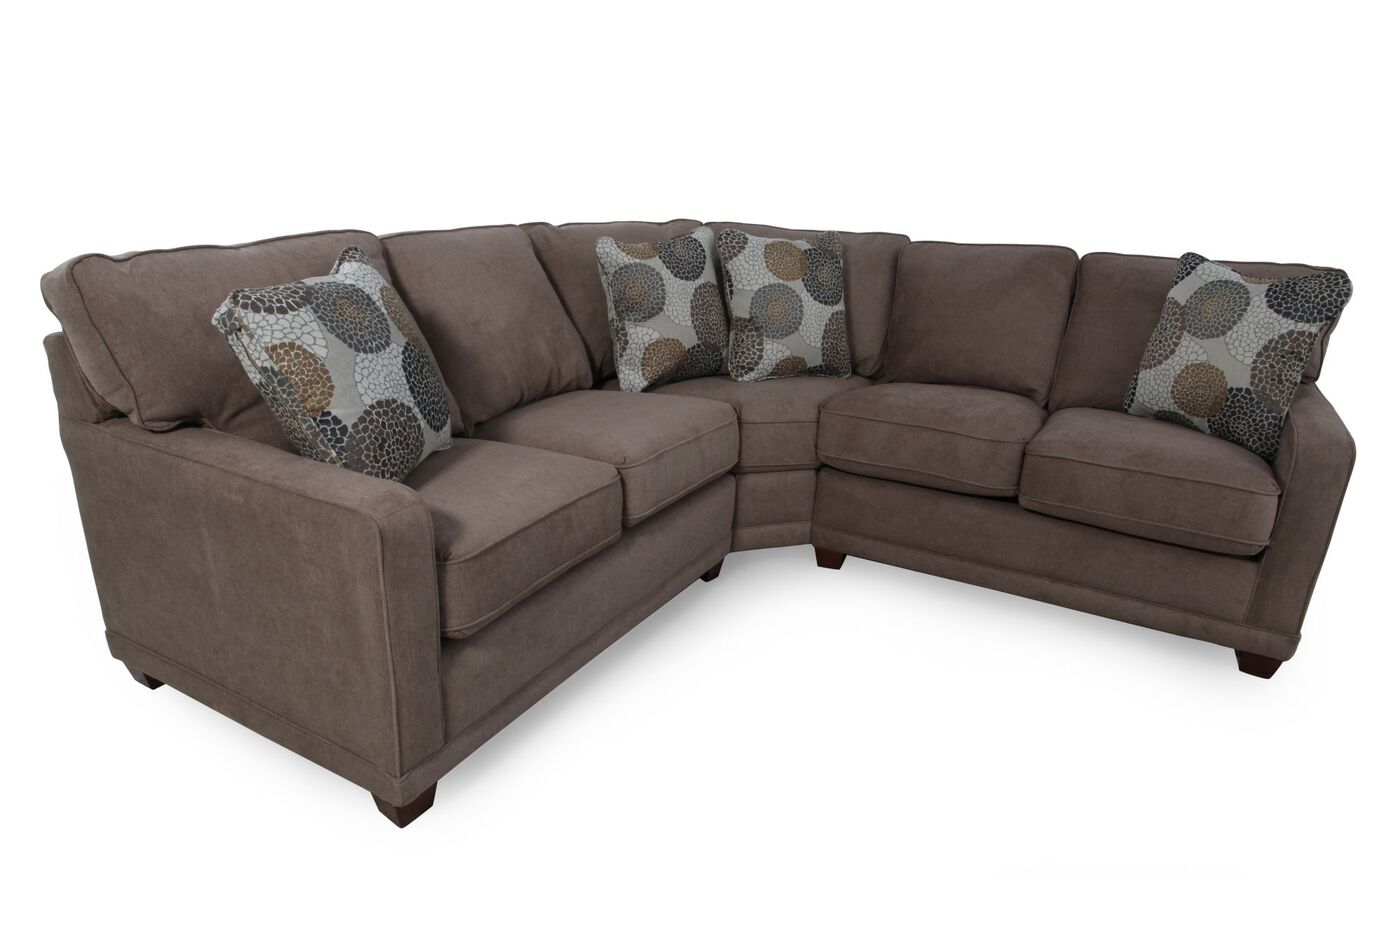 residence mathis with lazy kennedy brothers decor to your sofa applied la sectional furniture regard boy beautiful z cashmere